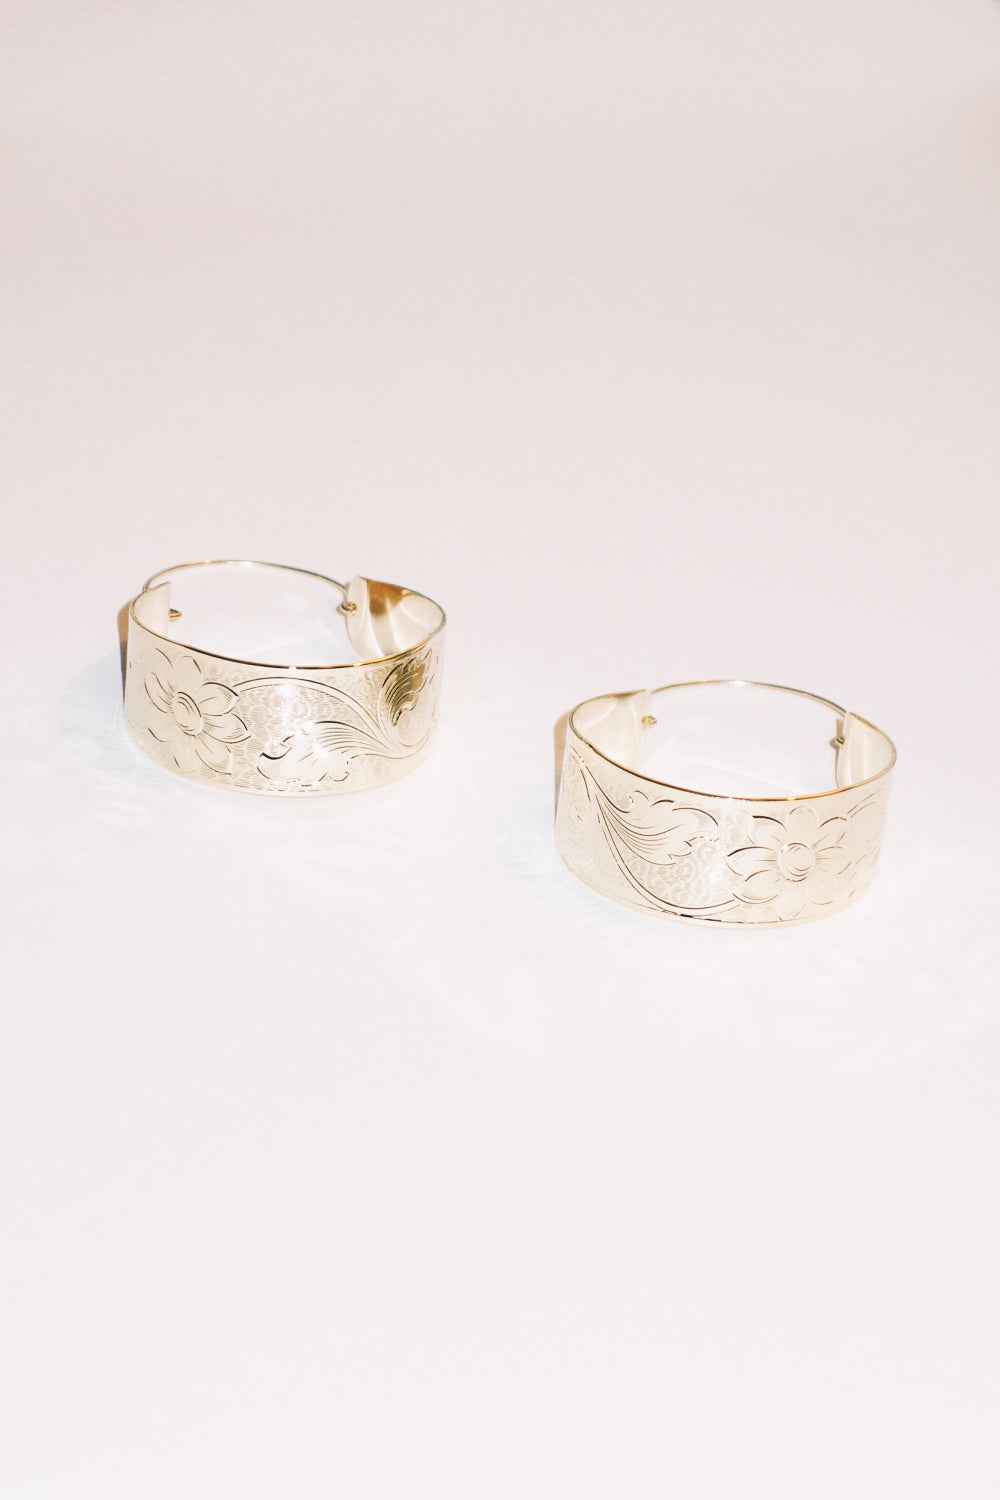 gold basket hoop earrings with engraved flower pattern